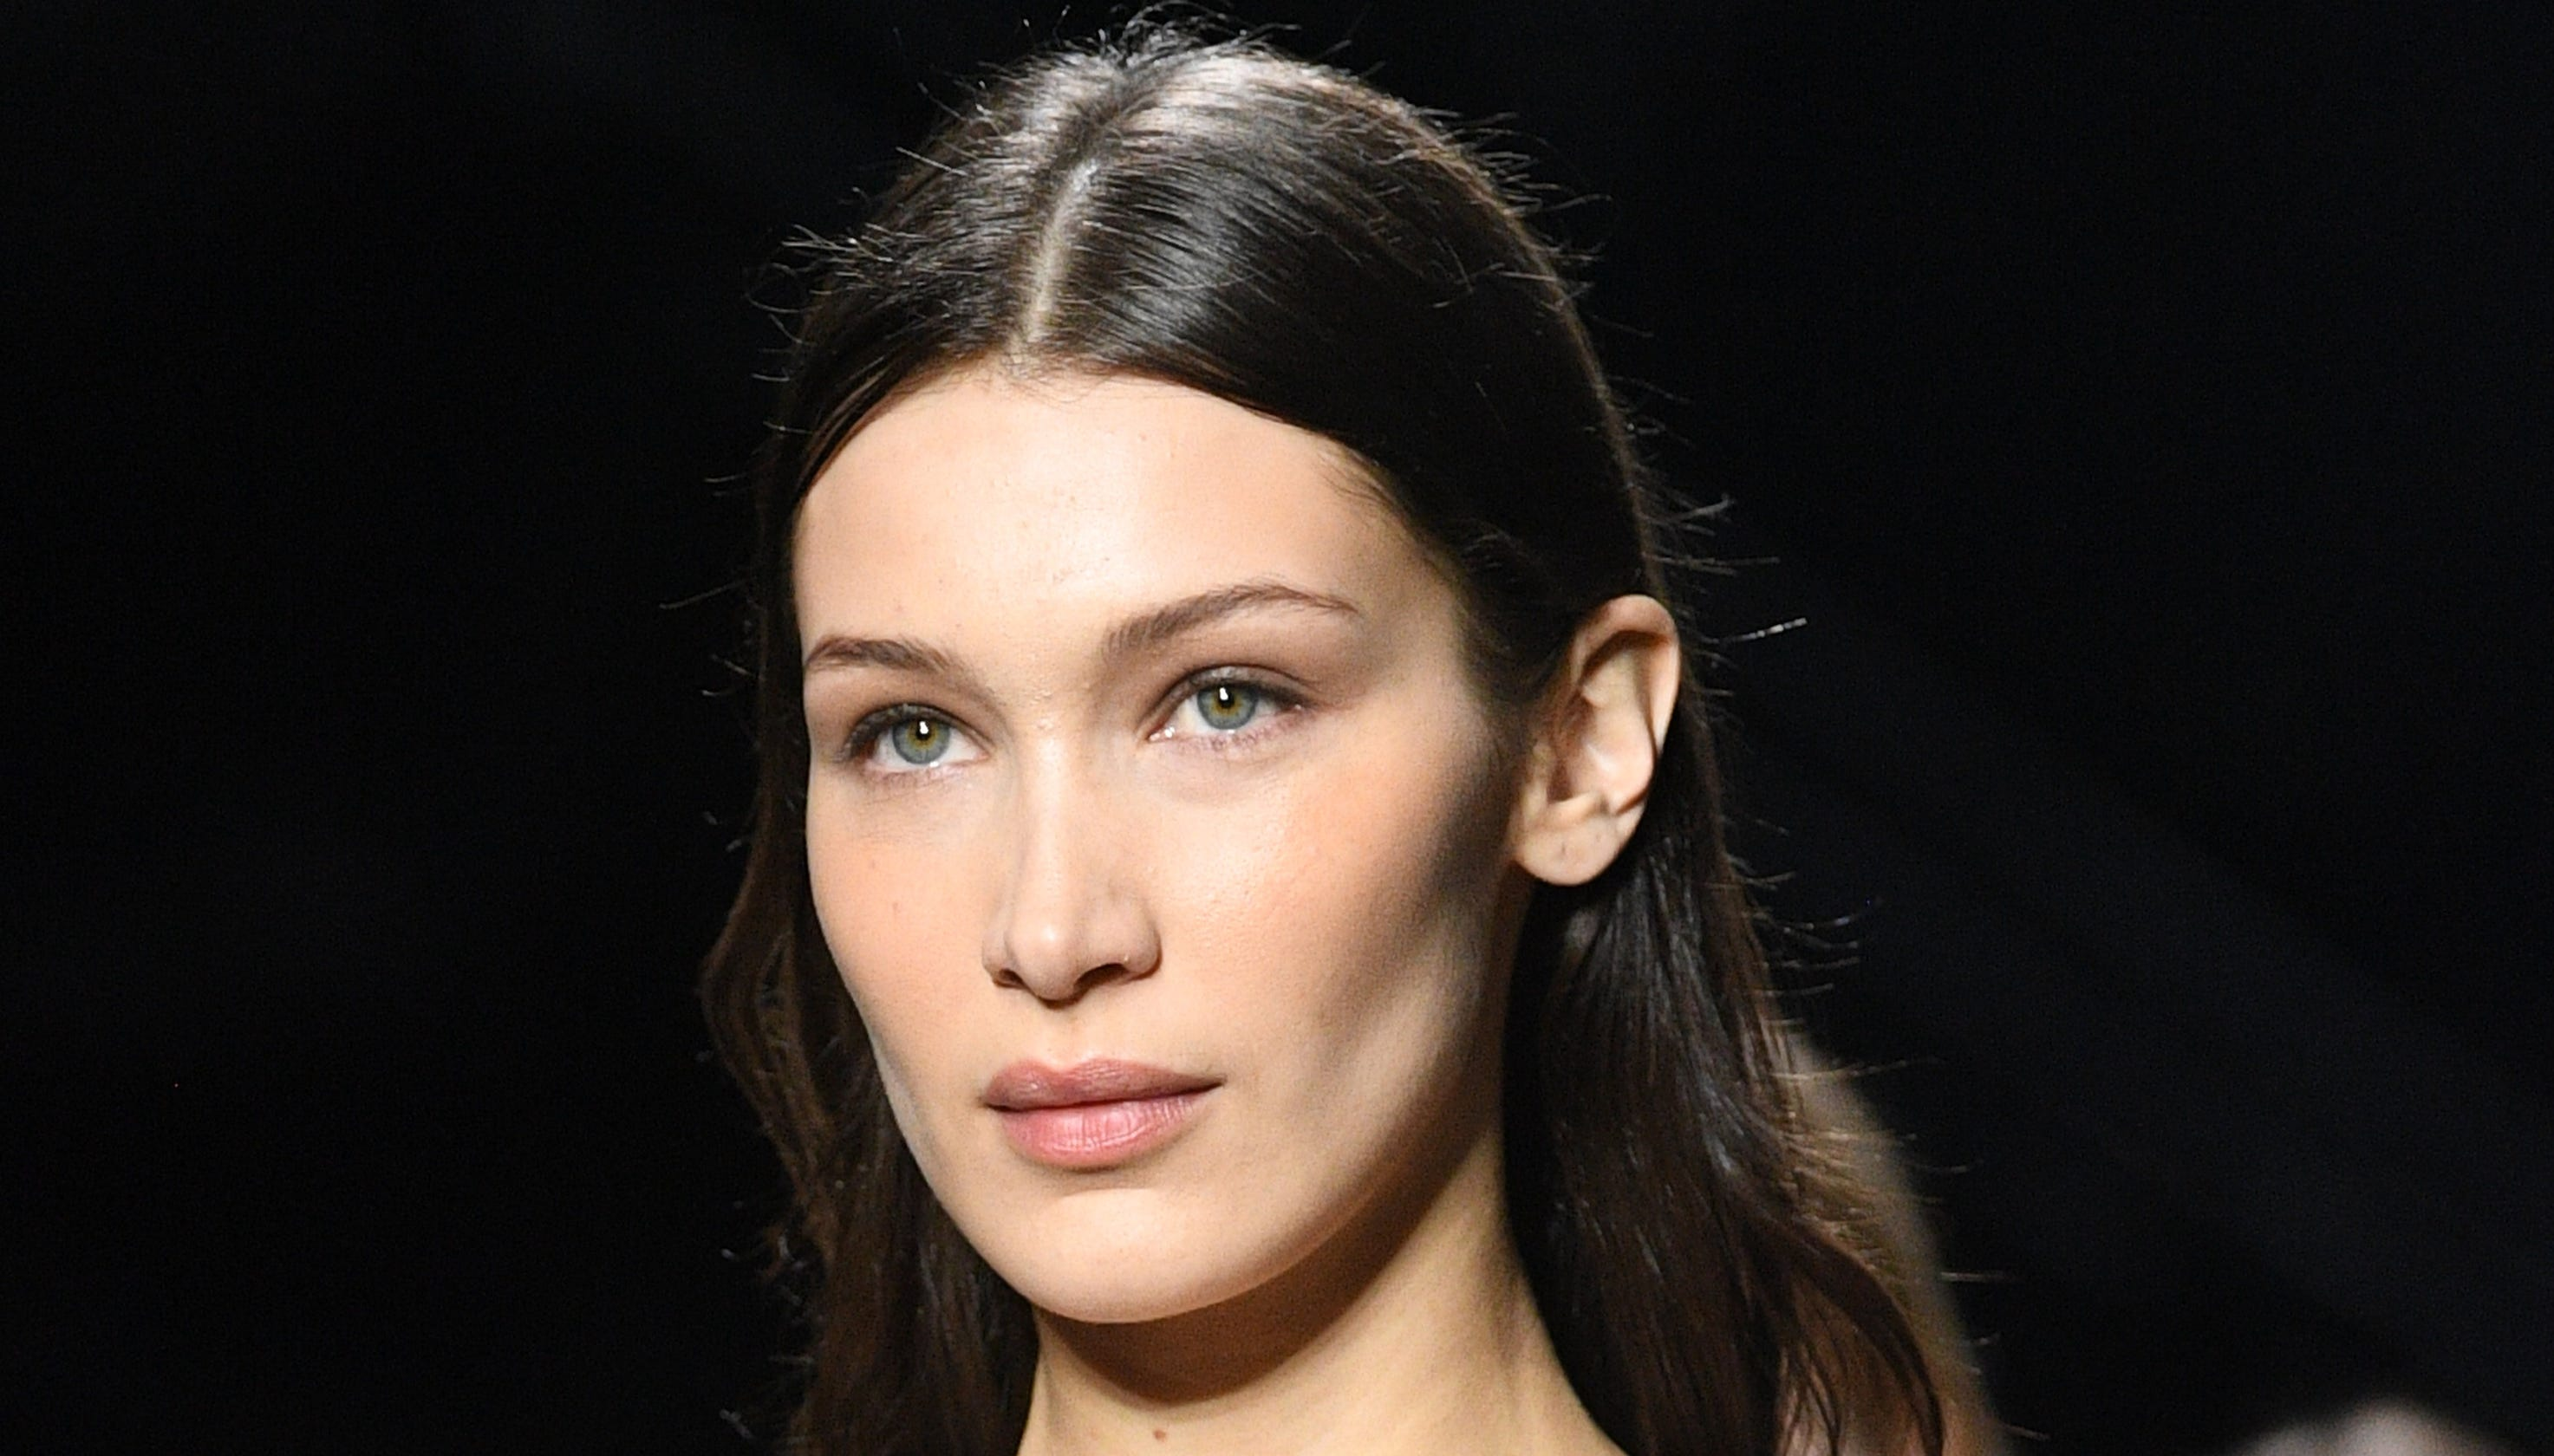 Bella Hadid says she made an honest mistake and asks for forgiveness